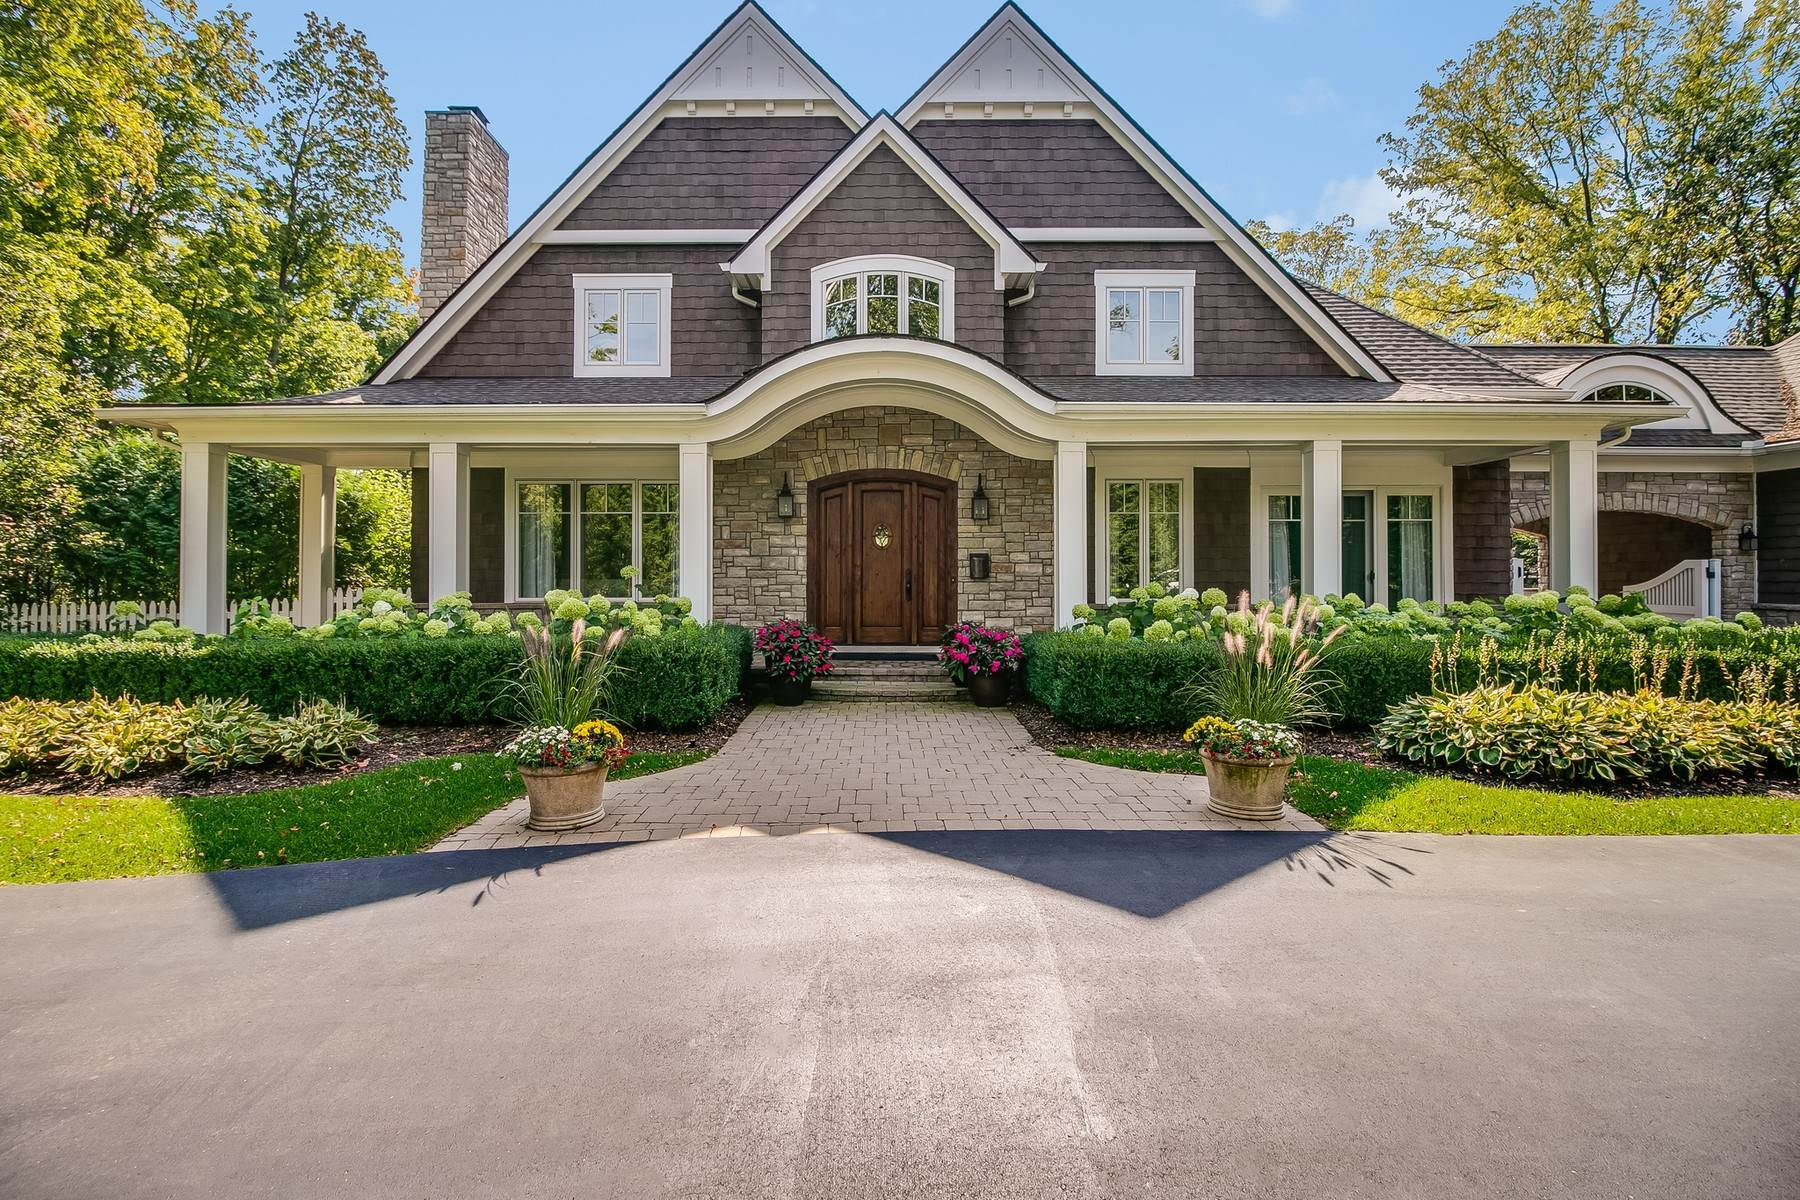 48. Single Family Homes for Sale at Bloomfield Hills 2025 Quarton Road Bloomfield Hills, Michigan 48301 United States